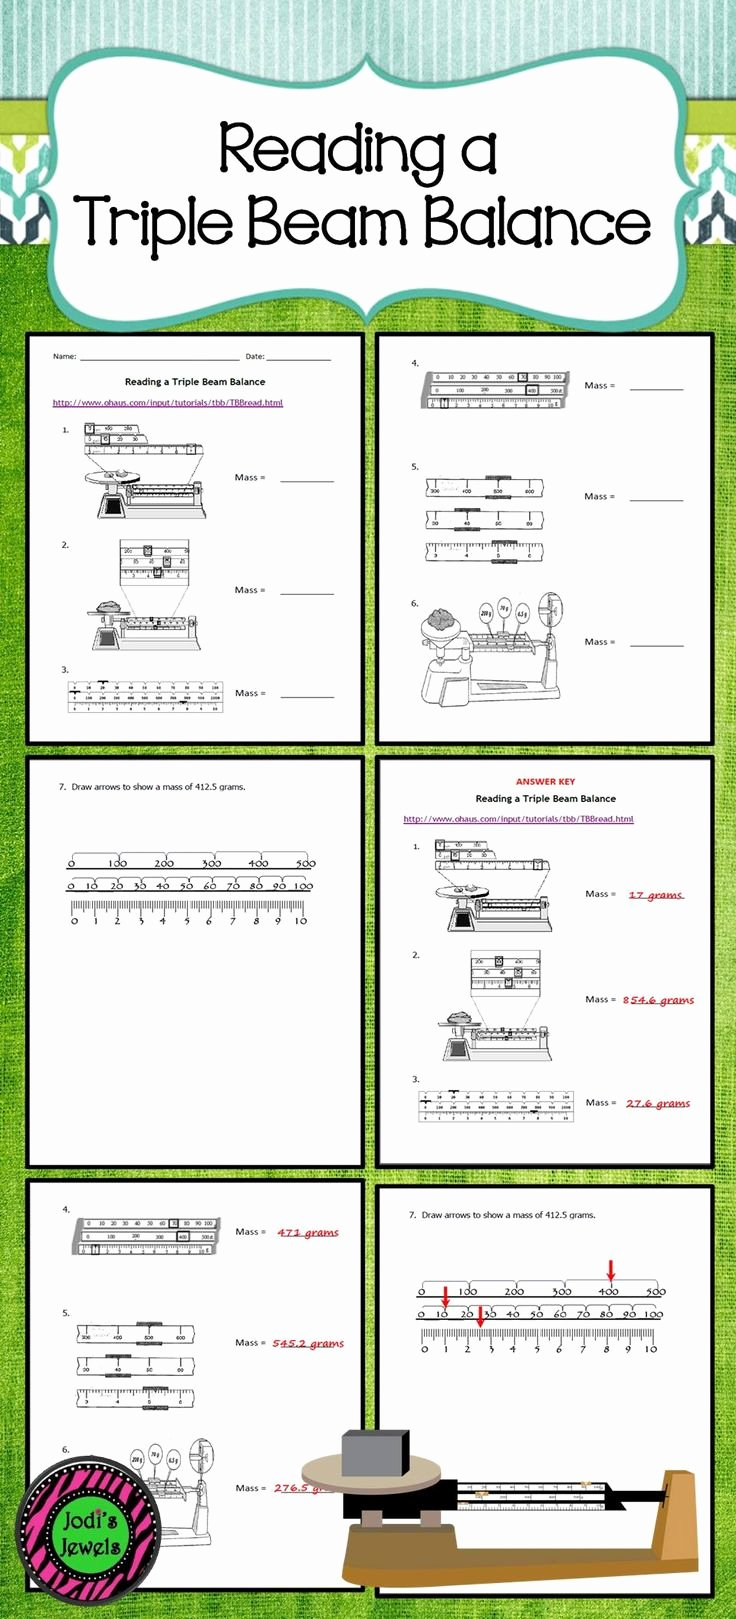 Triple Beam Balance Practice Worksheet Awesome Reading Triple Beam Balance Practice Worksheets